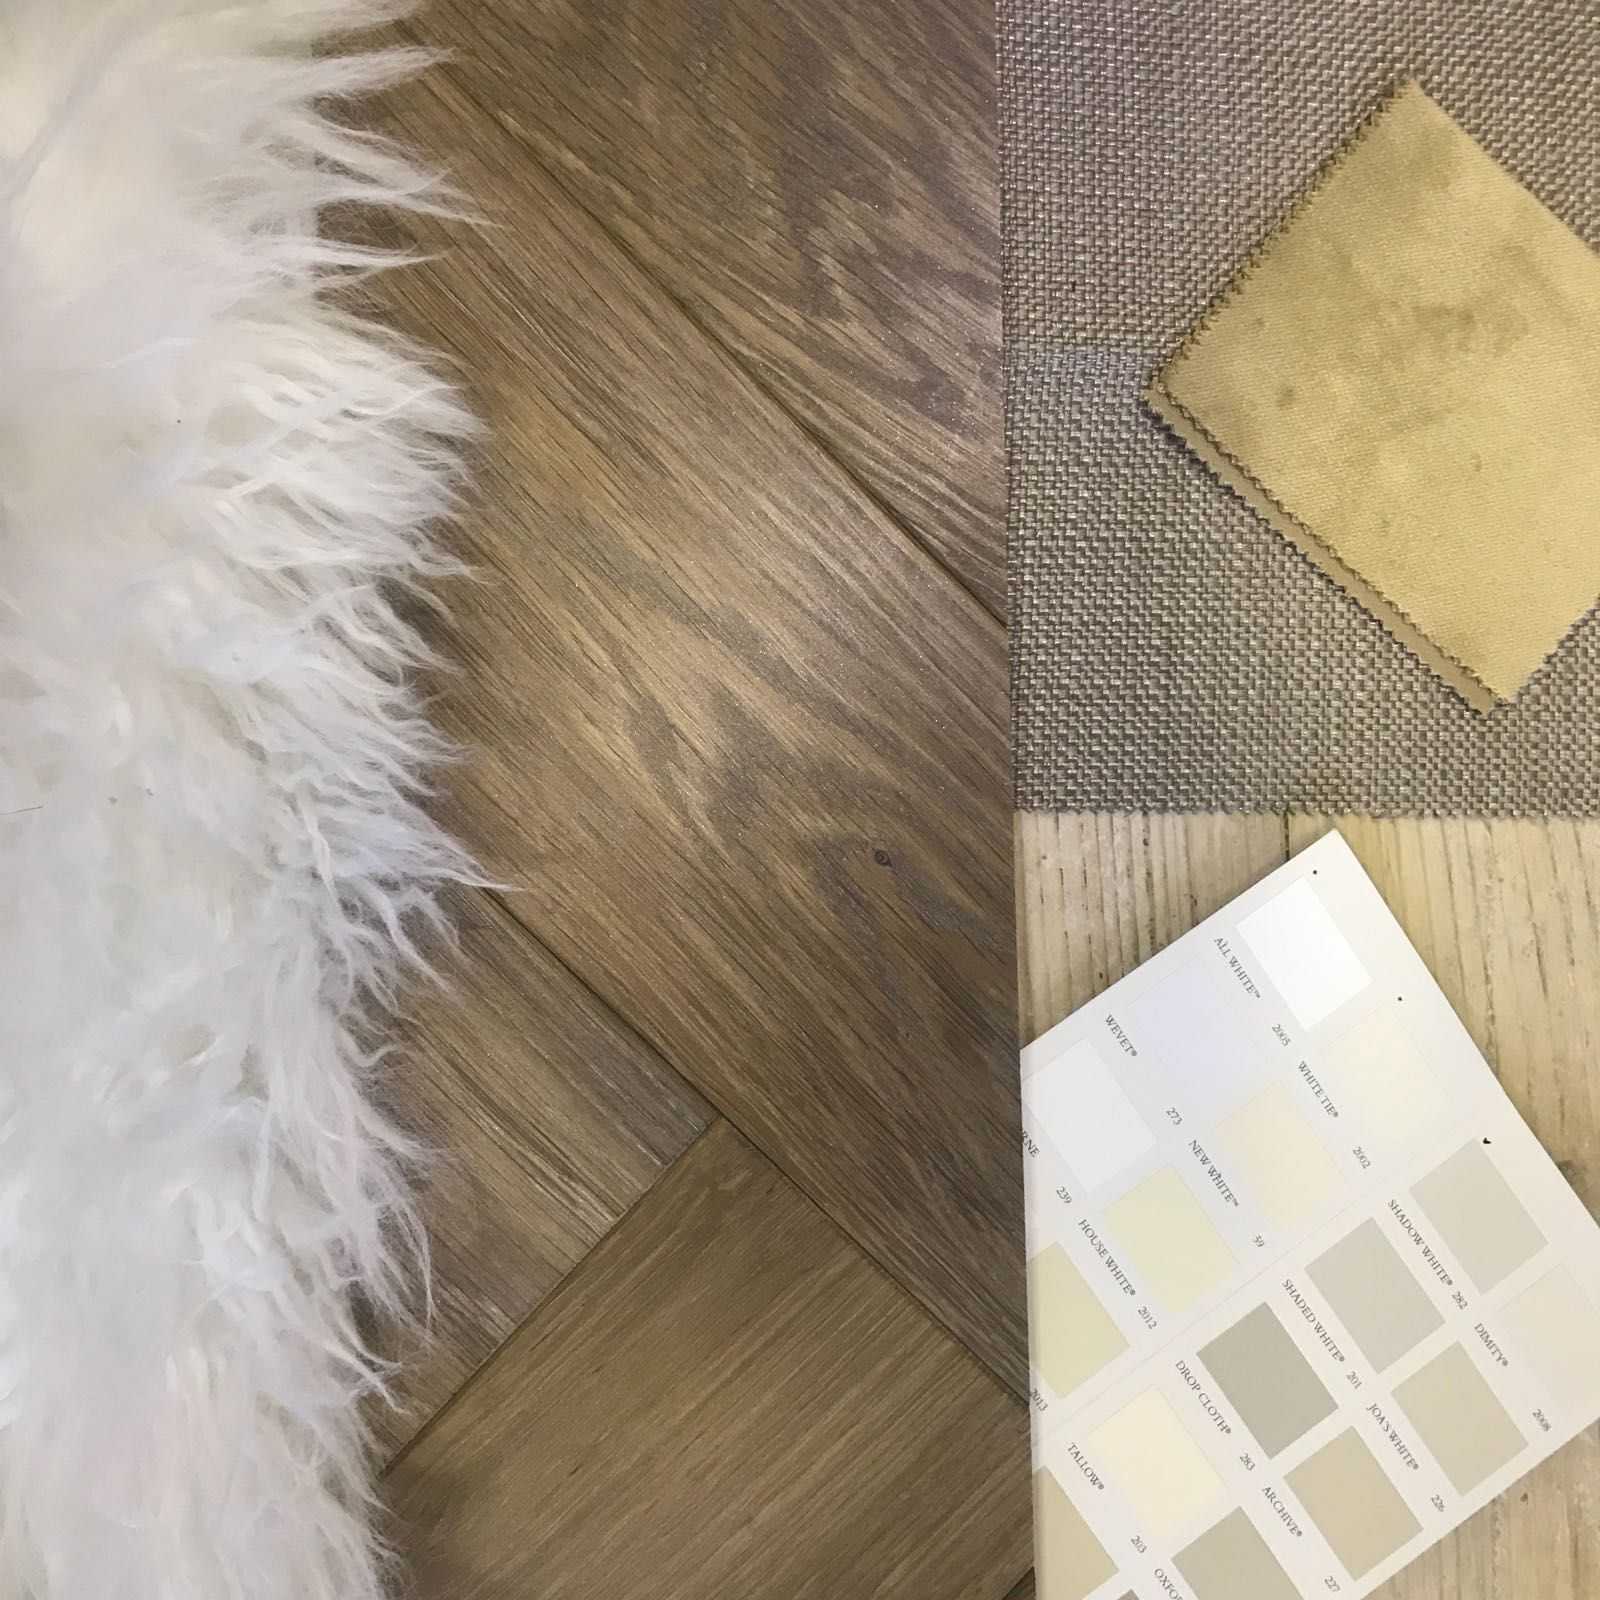 Play time at the Meraki Design office with natural colours and textures   #farrowandball #Interiordesign #MerakiDesign #Meraki #Creativeness #Createanddesign #color #trend #inspo #design #Style #designinspo #designinspiration #inspiration #interior4all #l